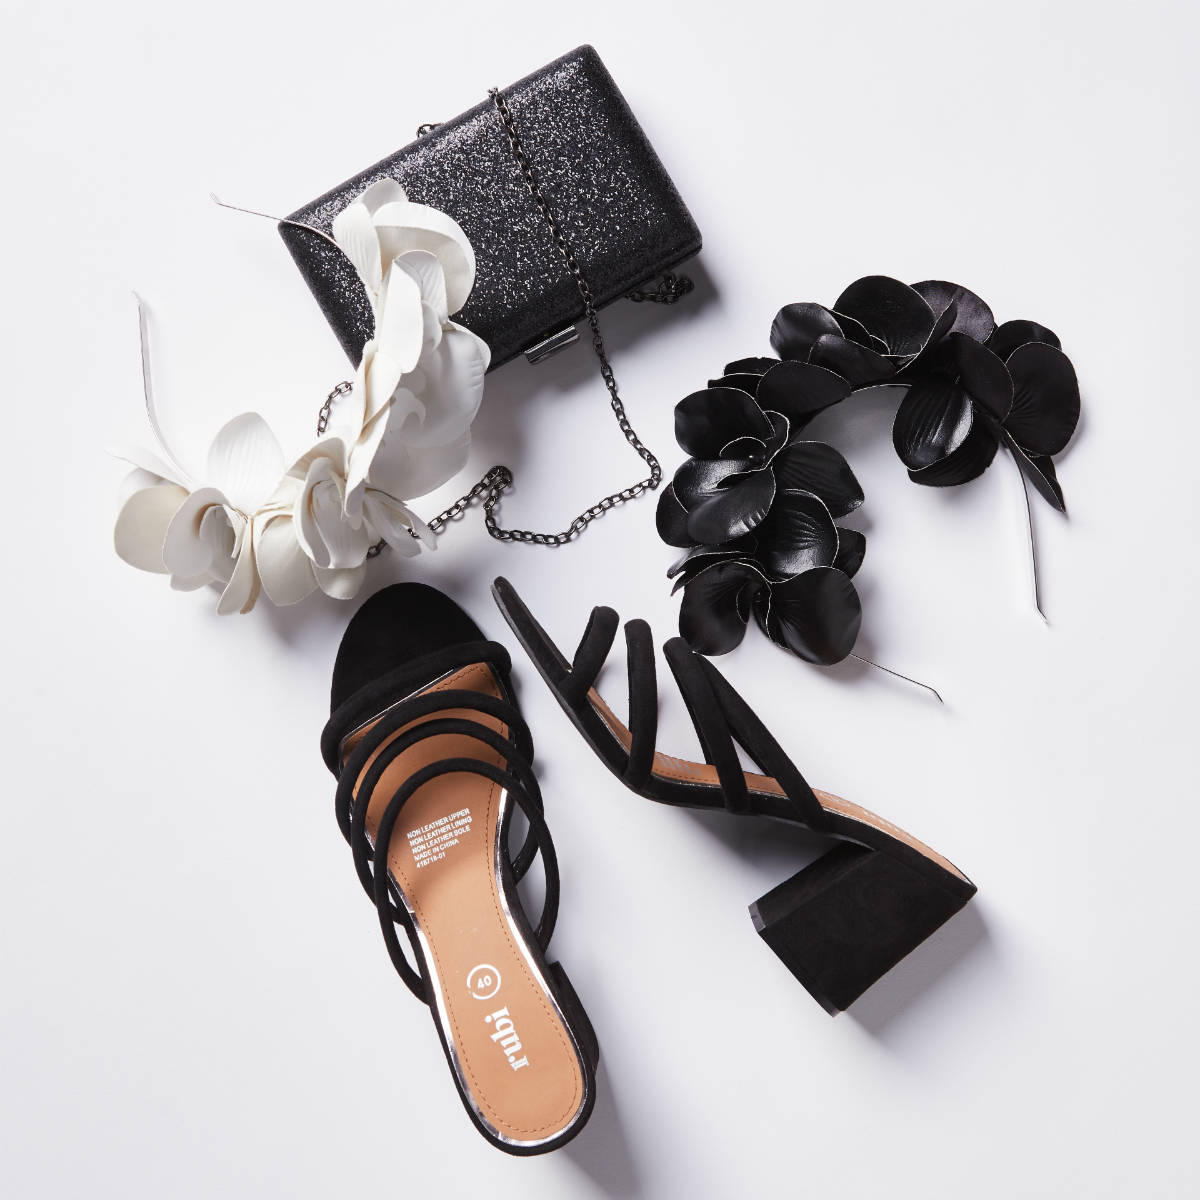 Rubi Shoes & Accessories from Cotton On